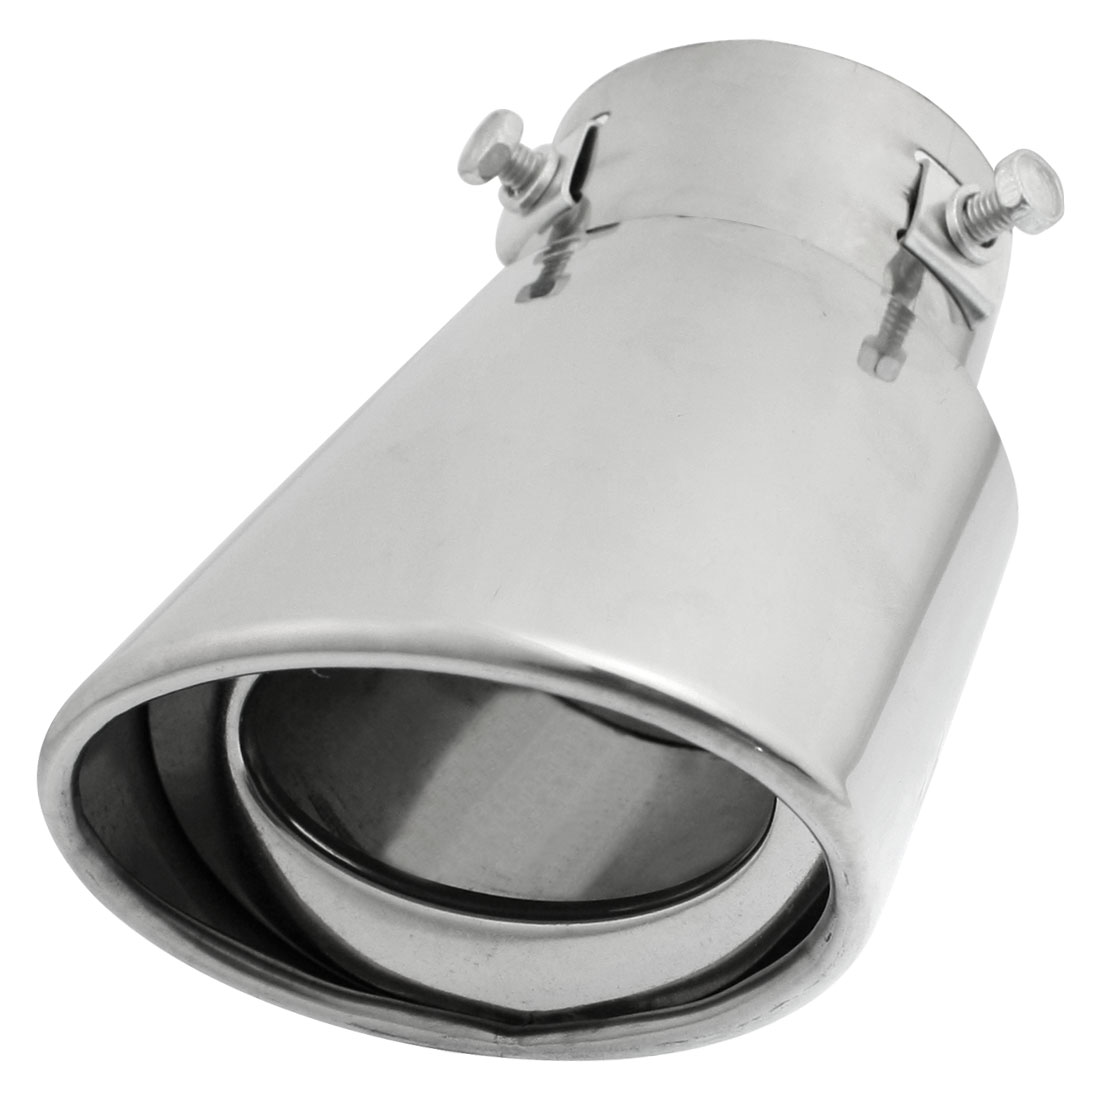 "Silver Tone Metal 2.4"" Inlet Exhaust Pipe Silencer Tail Muffler Tip"